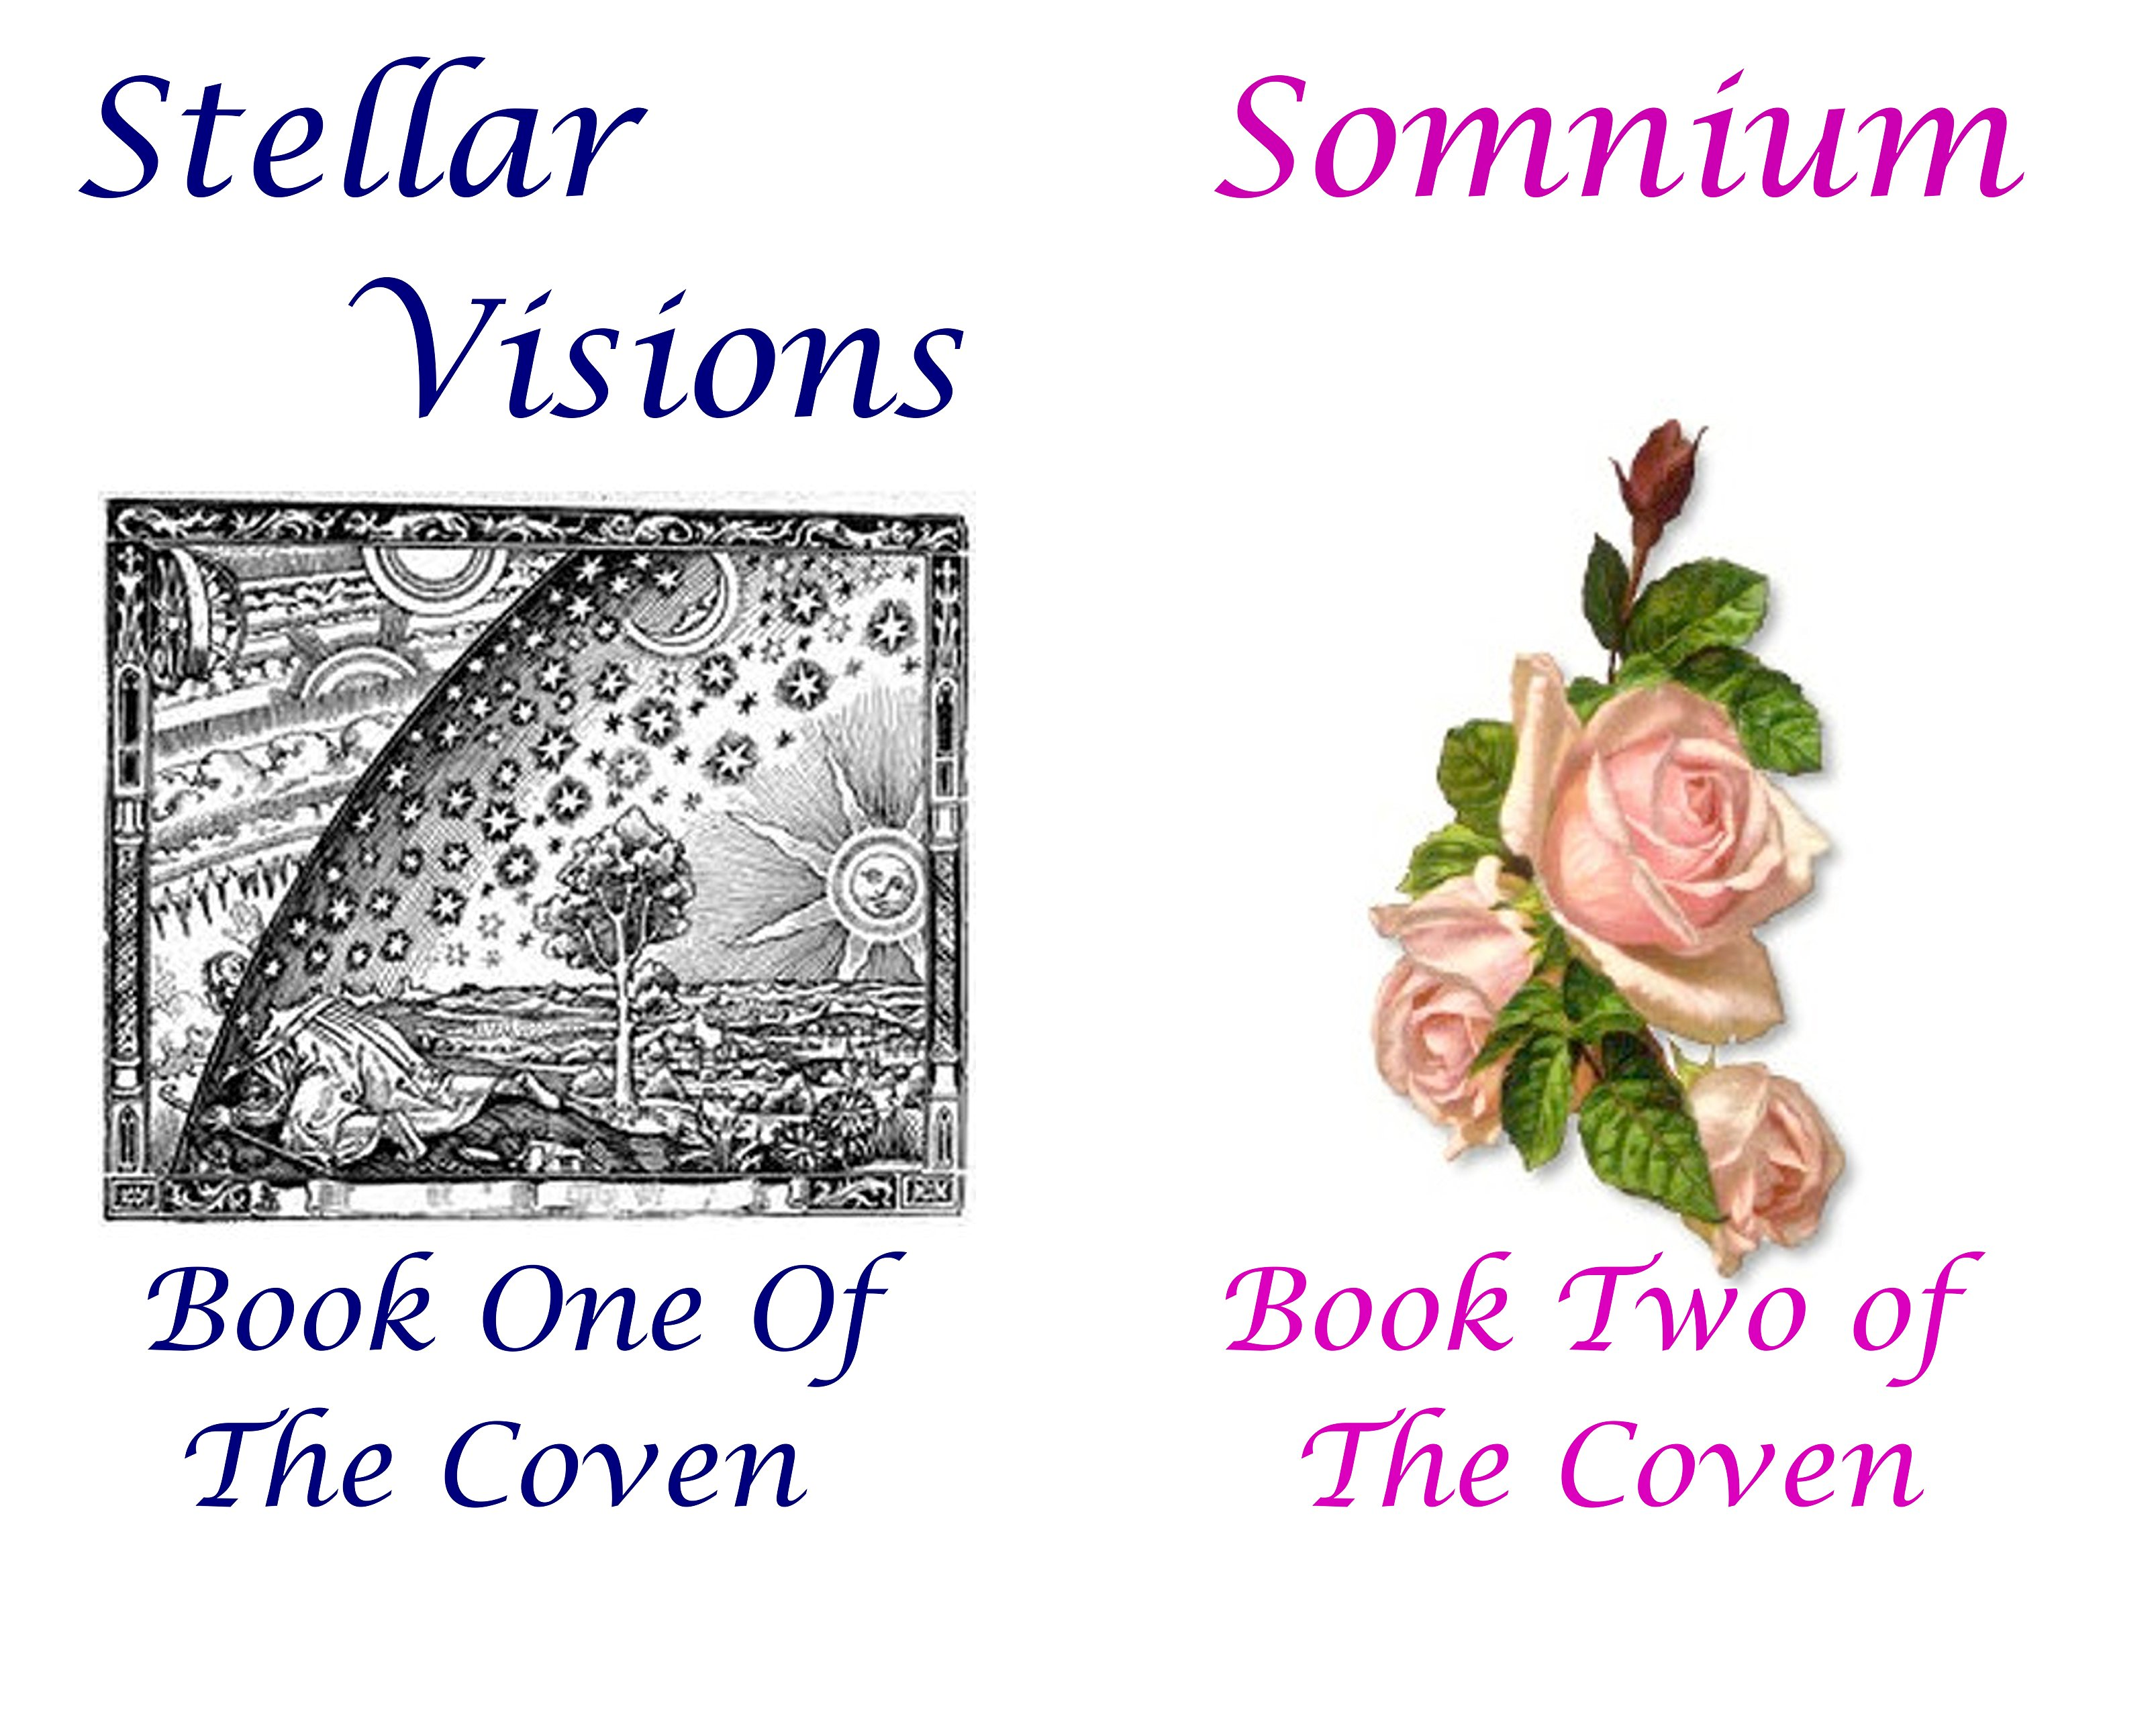 The Coven (2 Book Series)